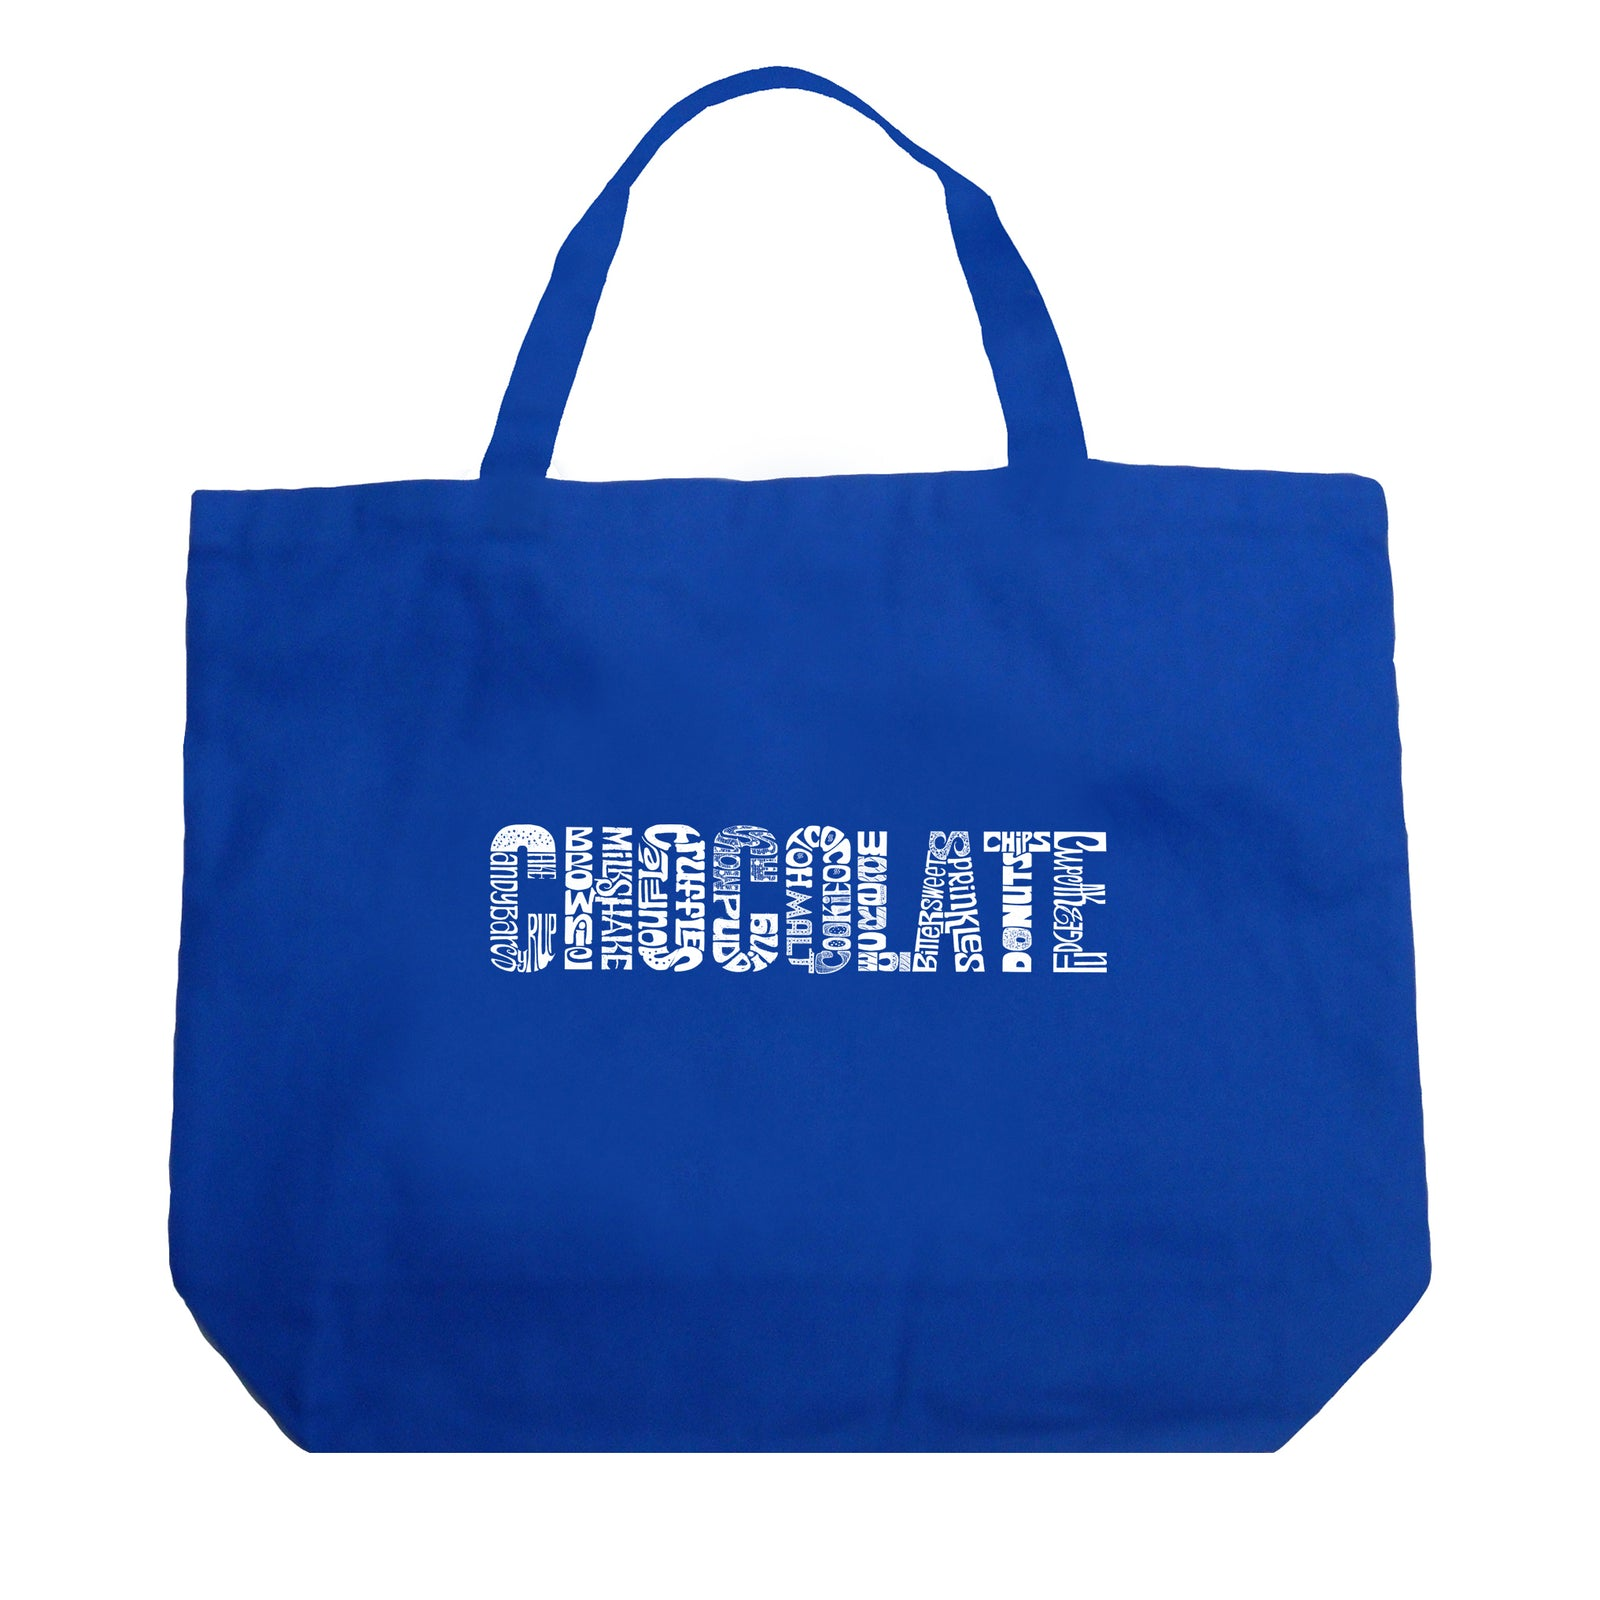 Large Tote Bag - Different foods made with chocolate